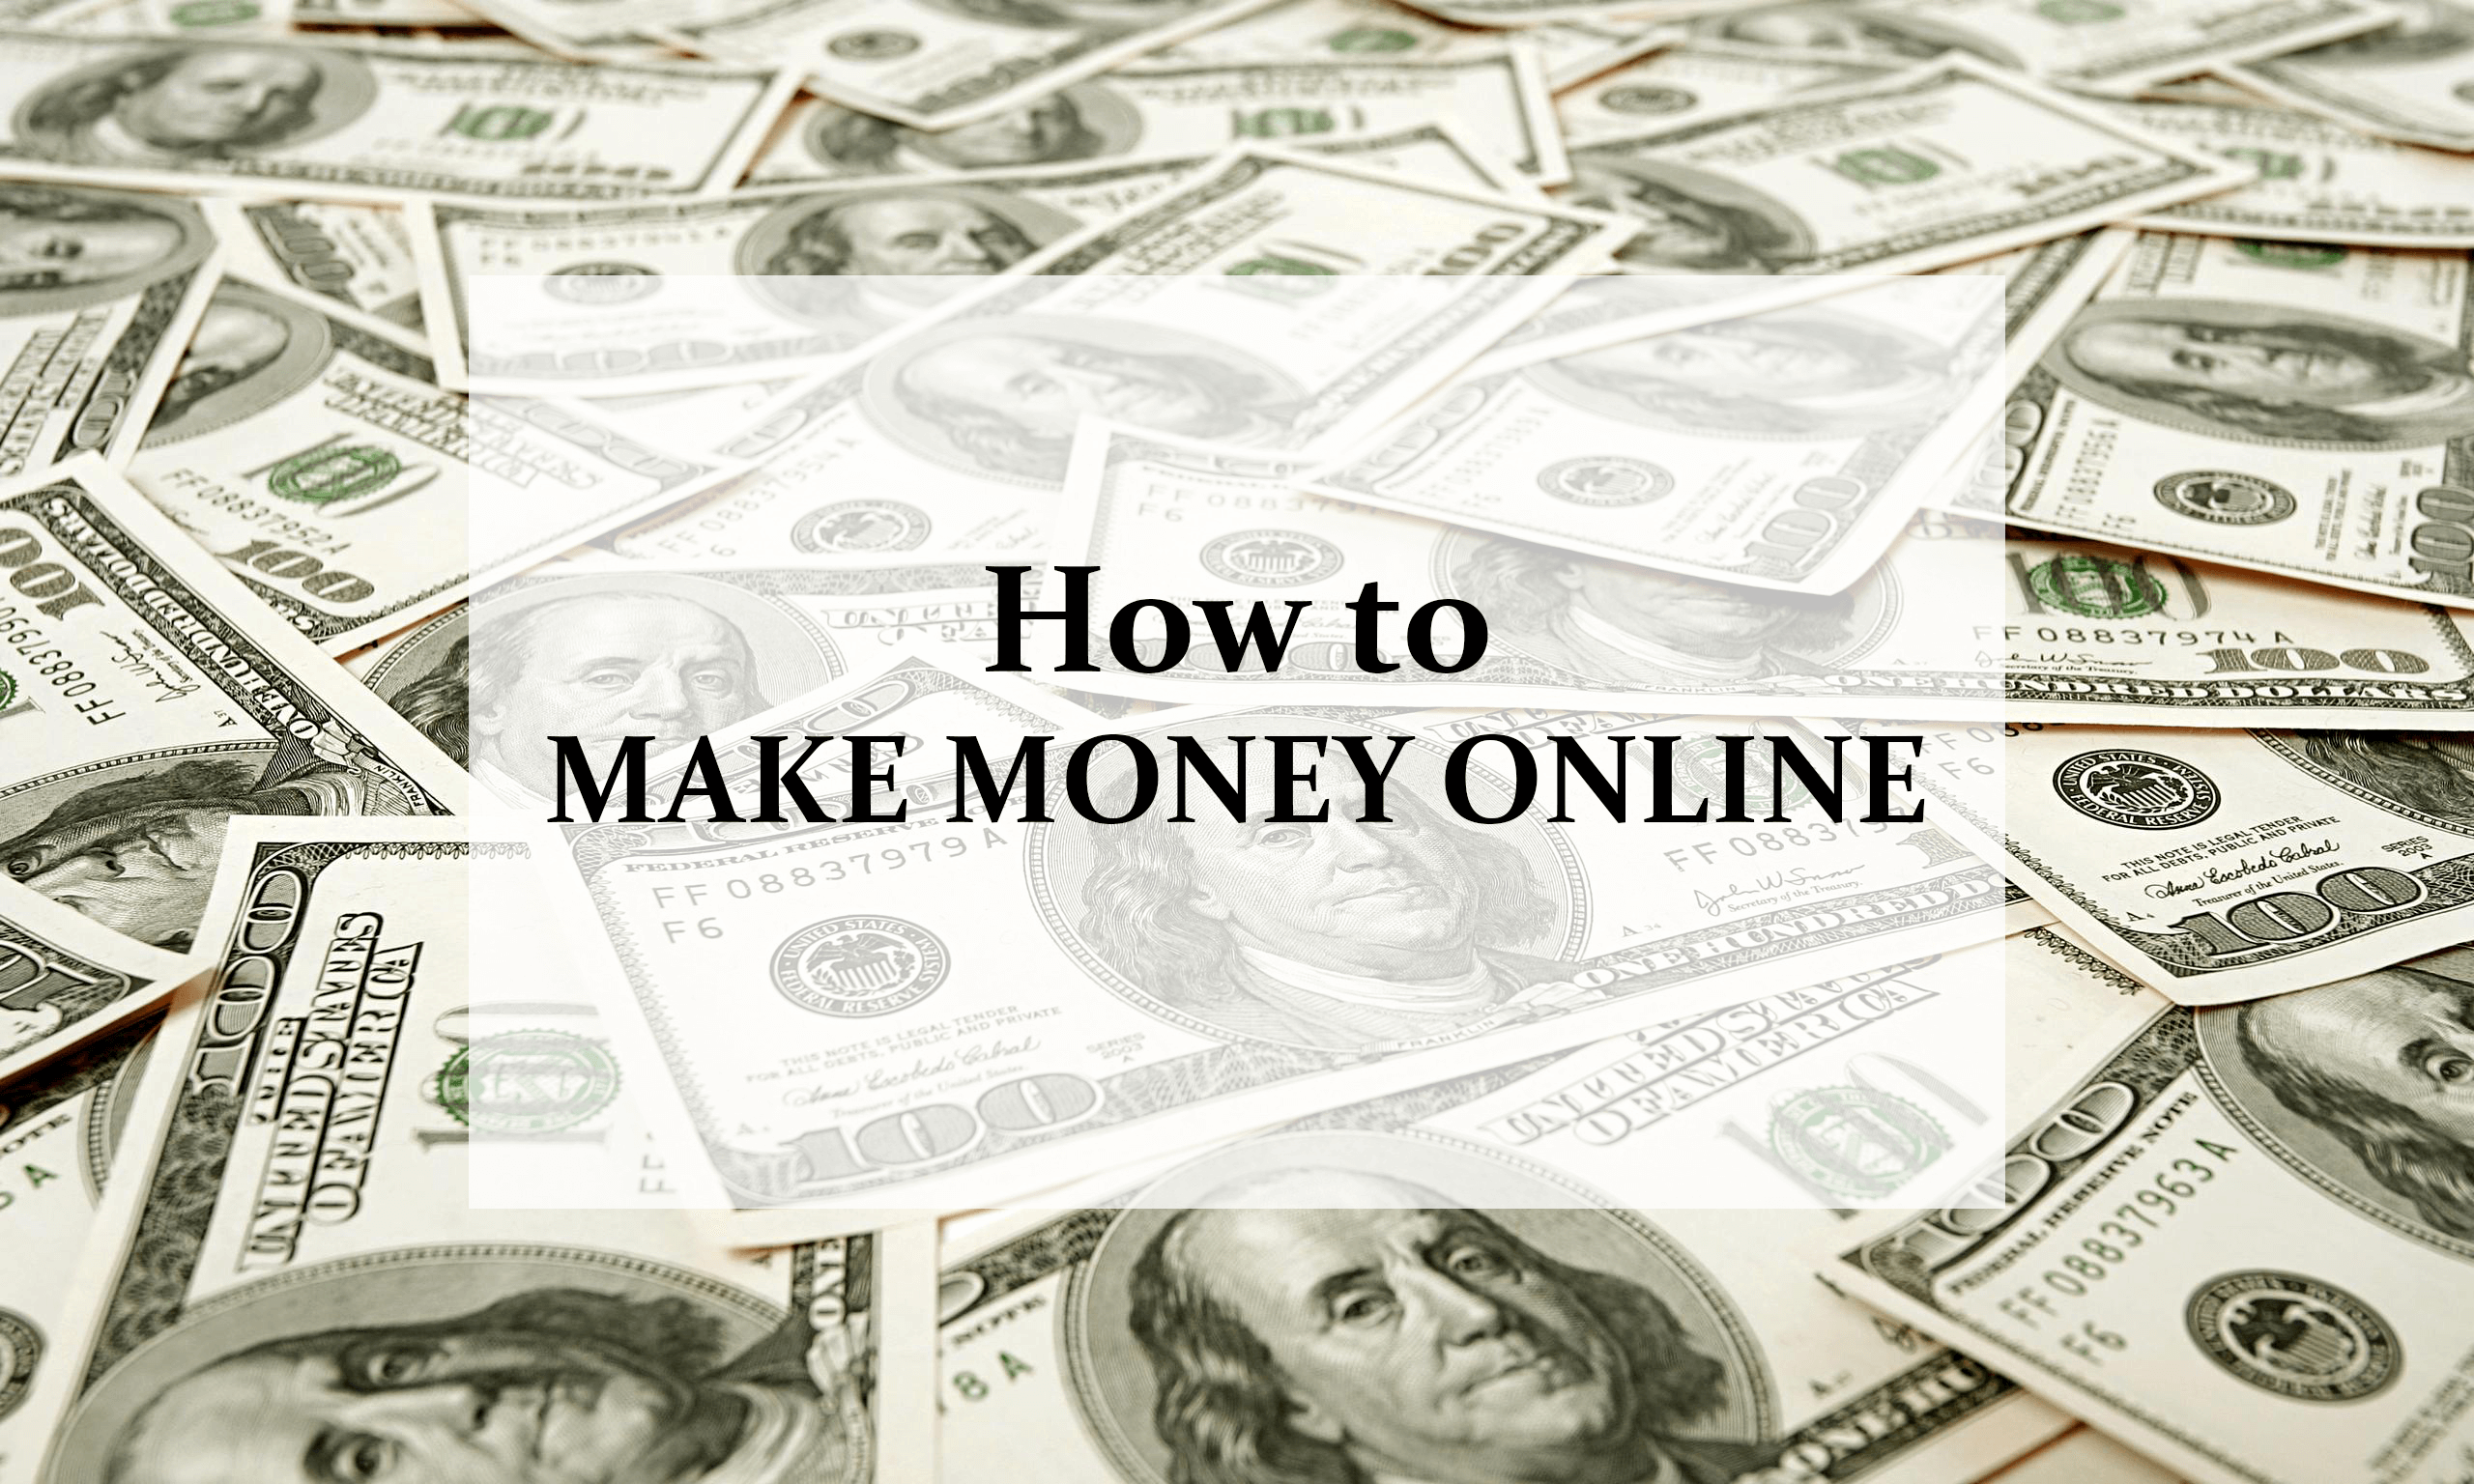 List of Options on How to Make Money Online